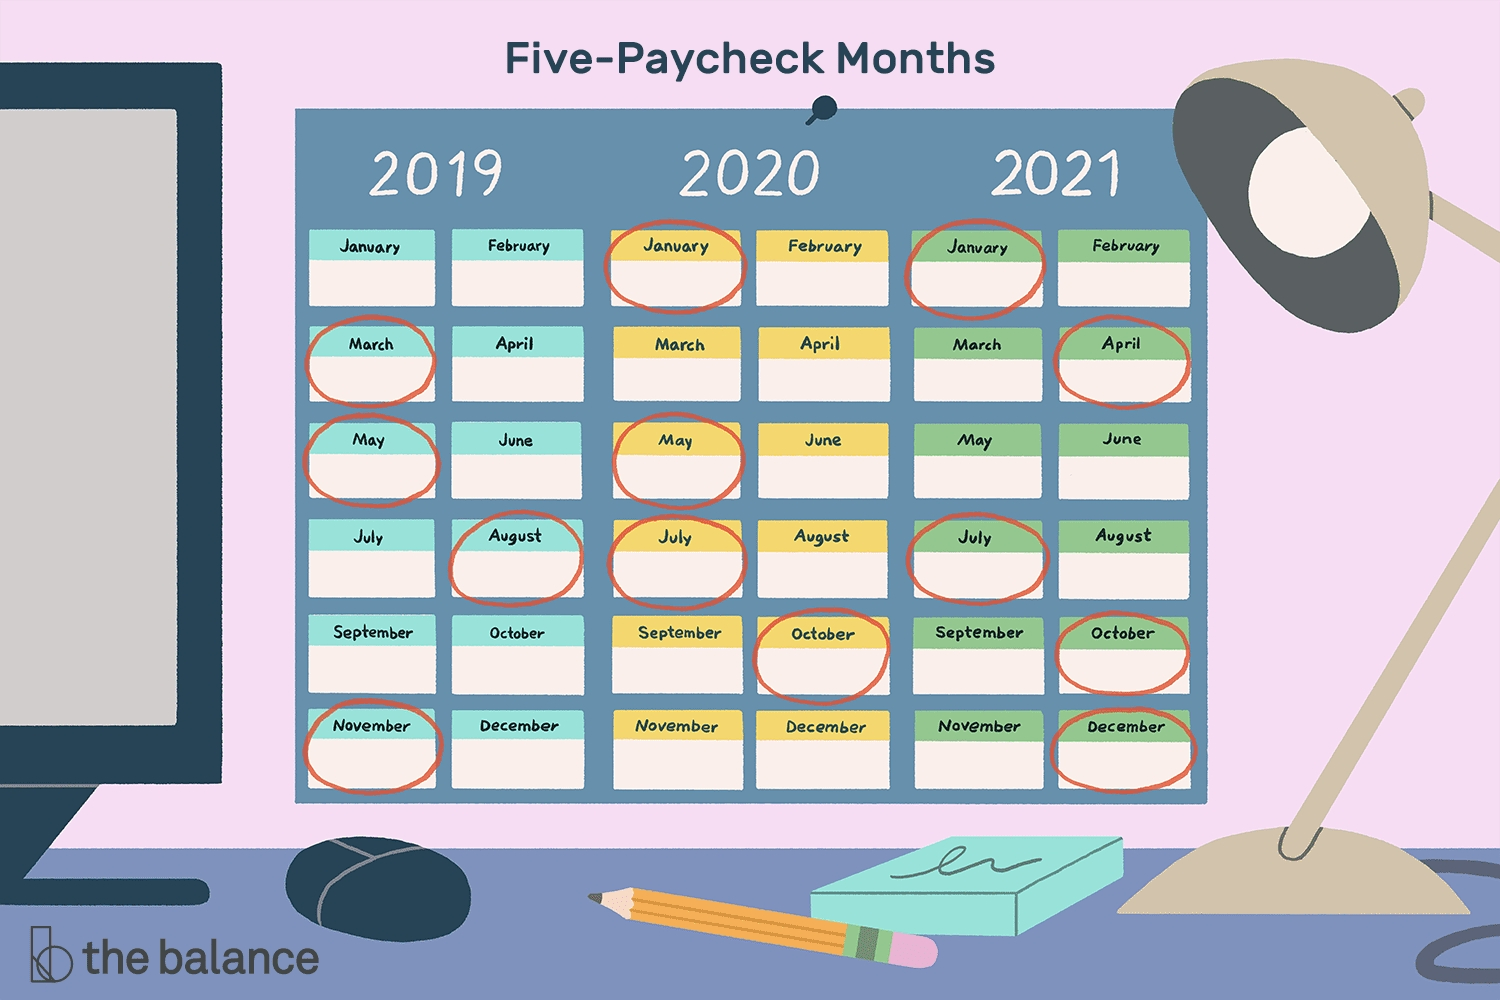 Months In Which You Receive 5 Paychecks From 2019-2029  How Many Fortnights In The 2021 O 2021 Financial Year In Australia